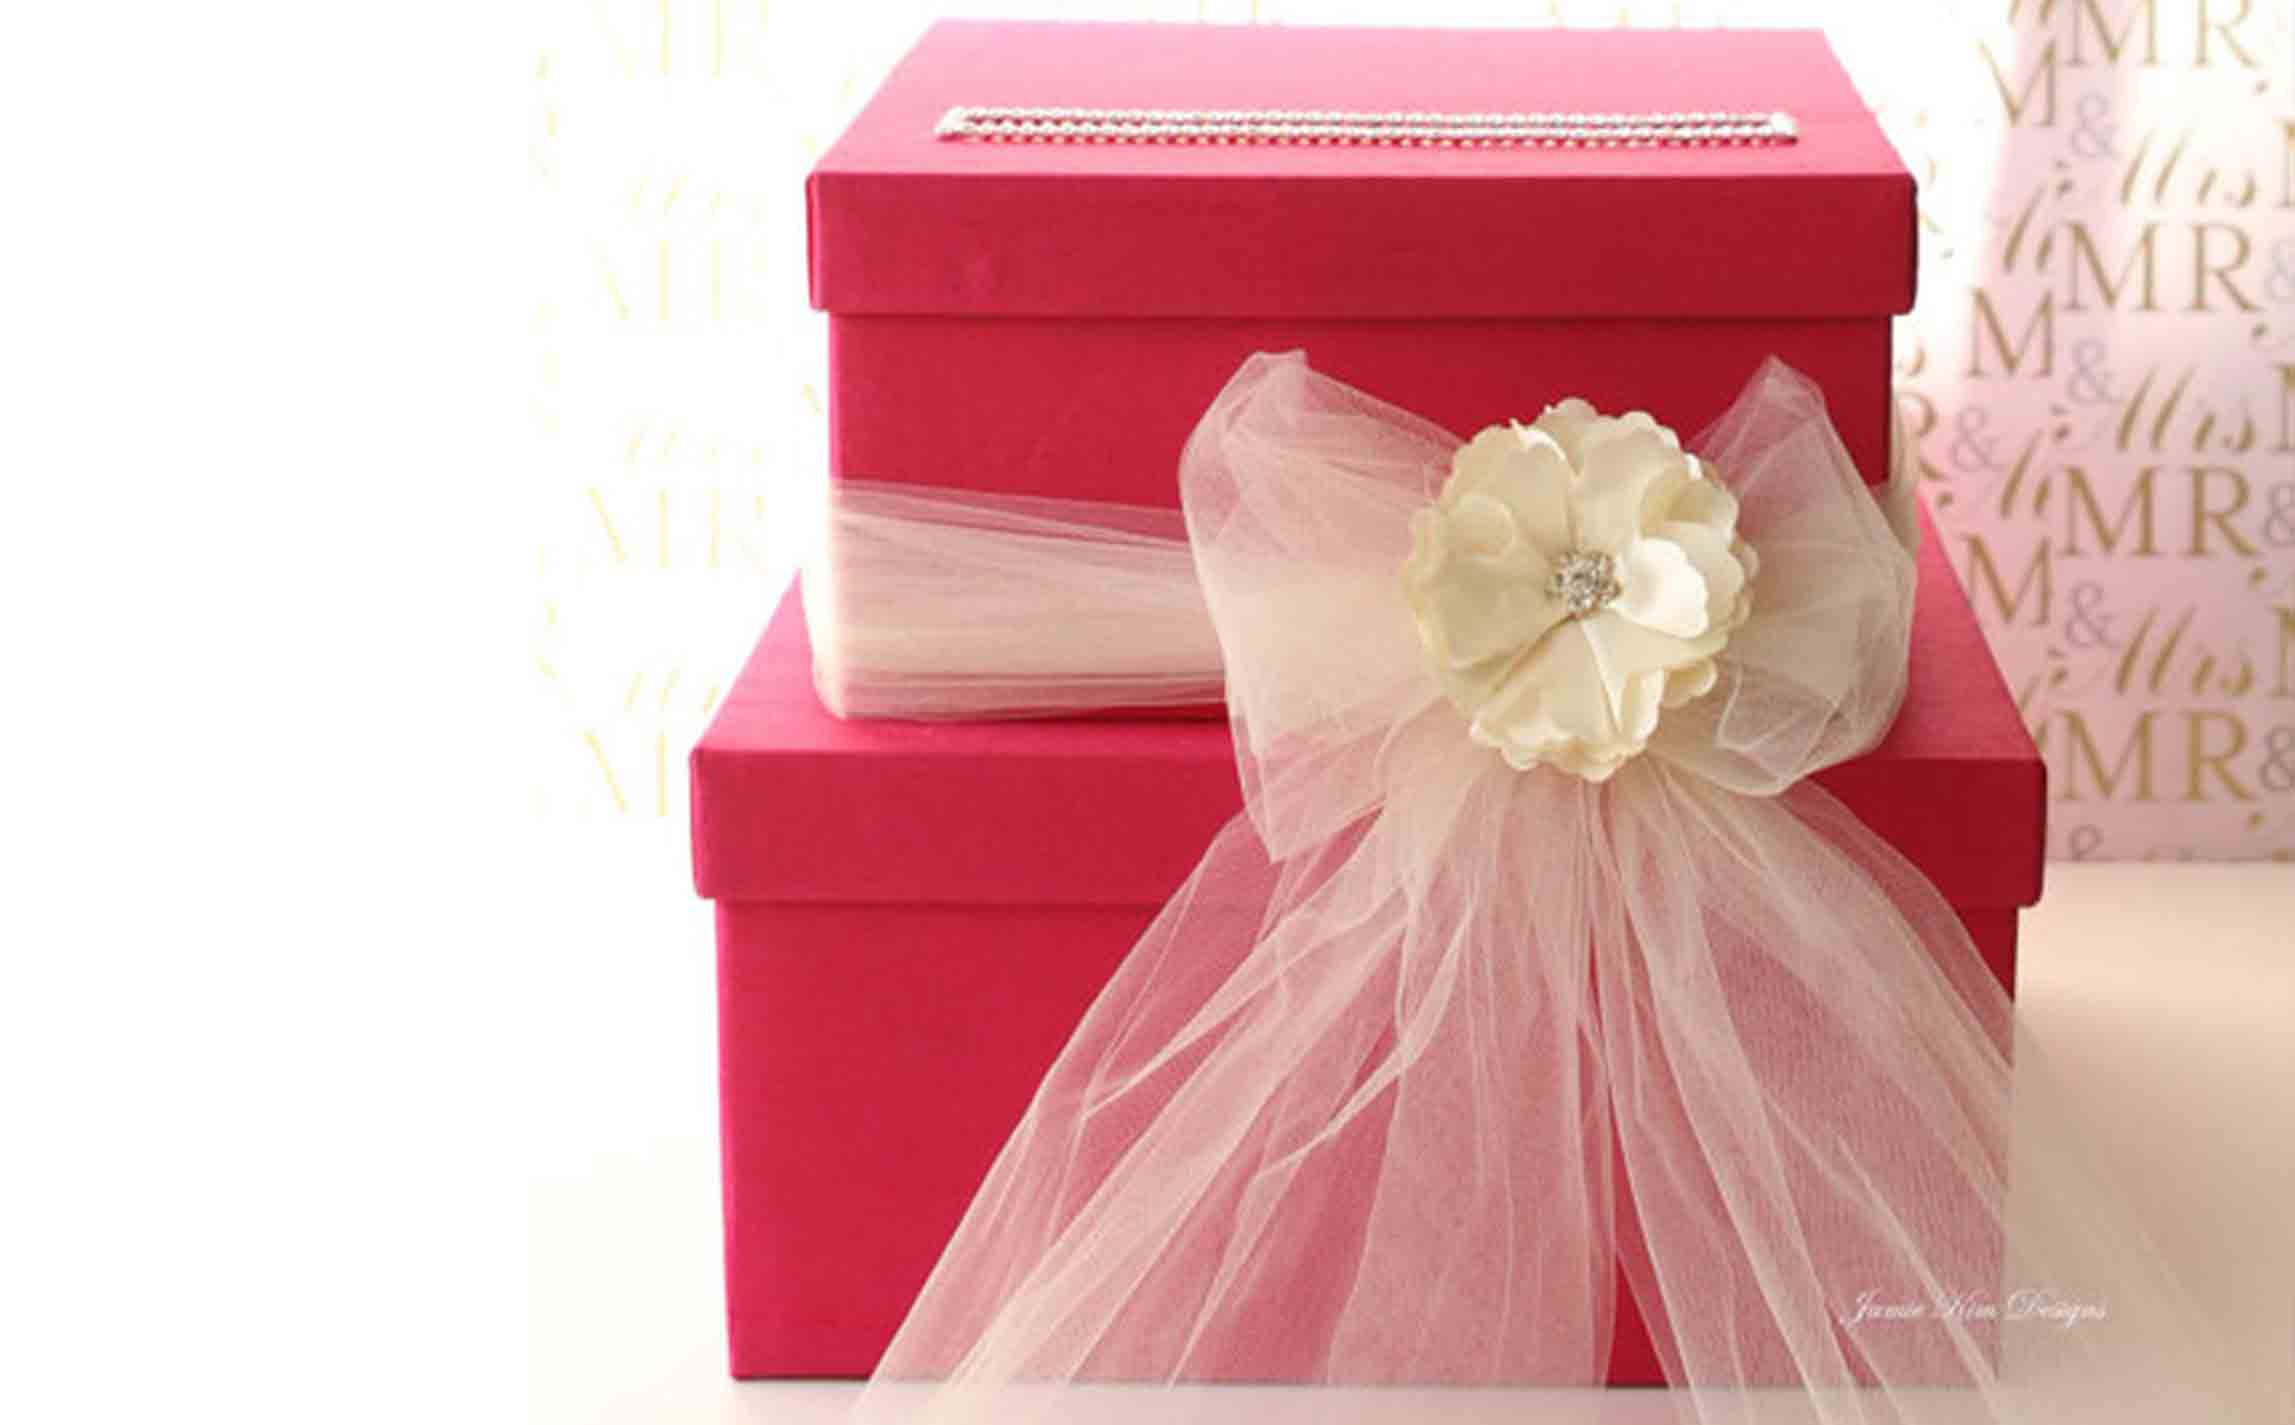 Wedding Gift Cards Online: 8 Ways To Stop Wedding Gift Cards From Being Stolen